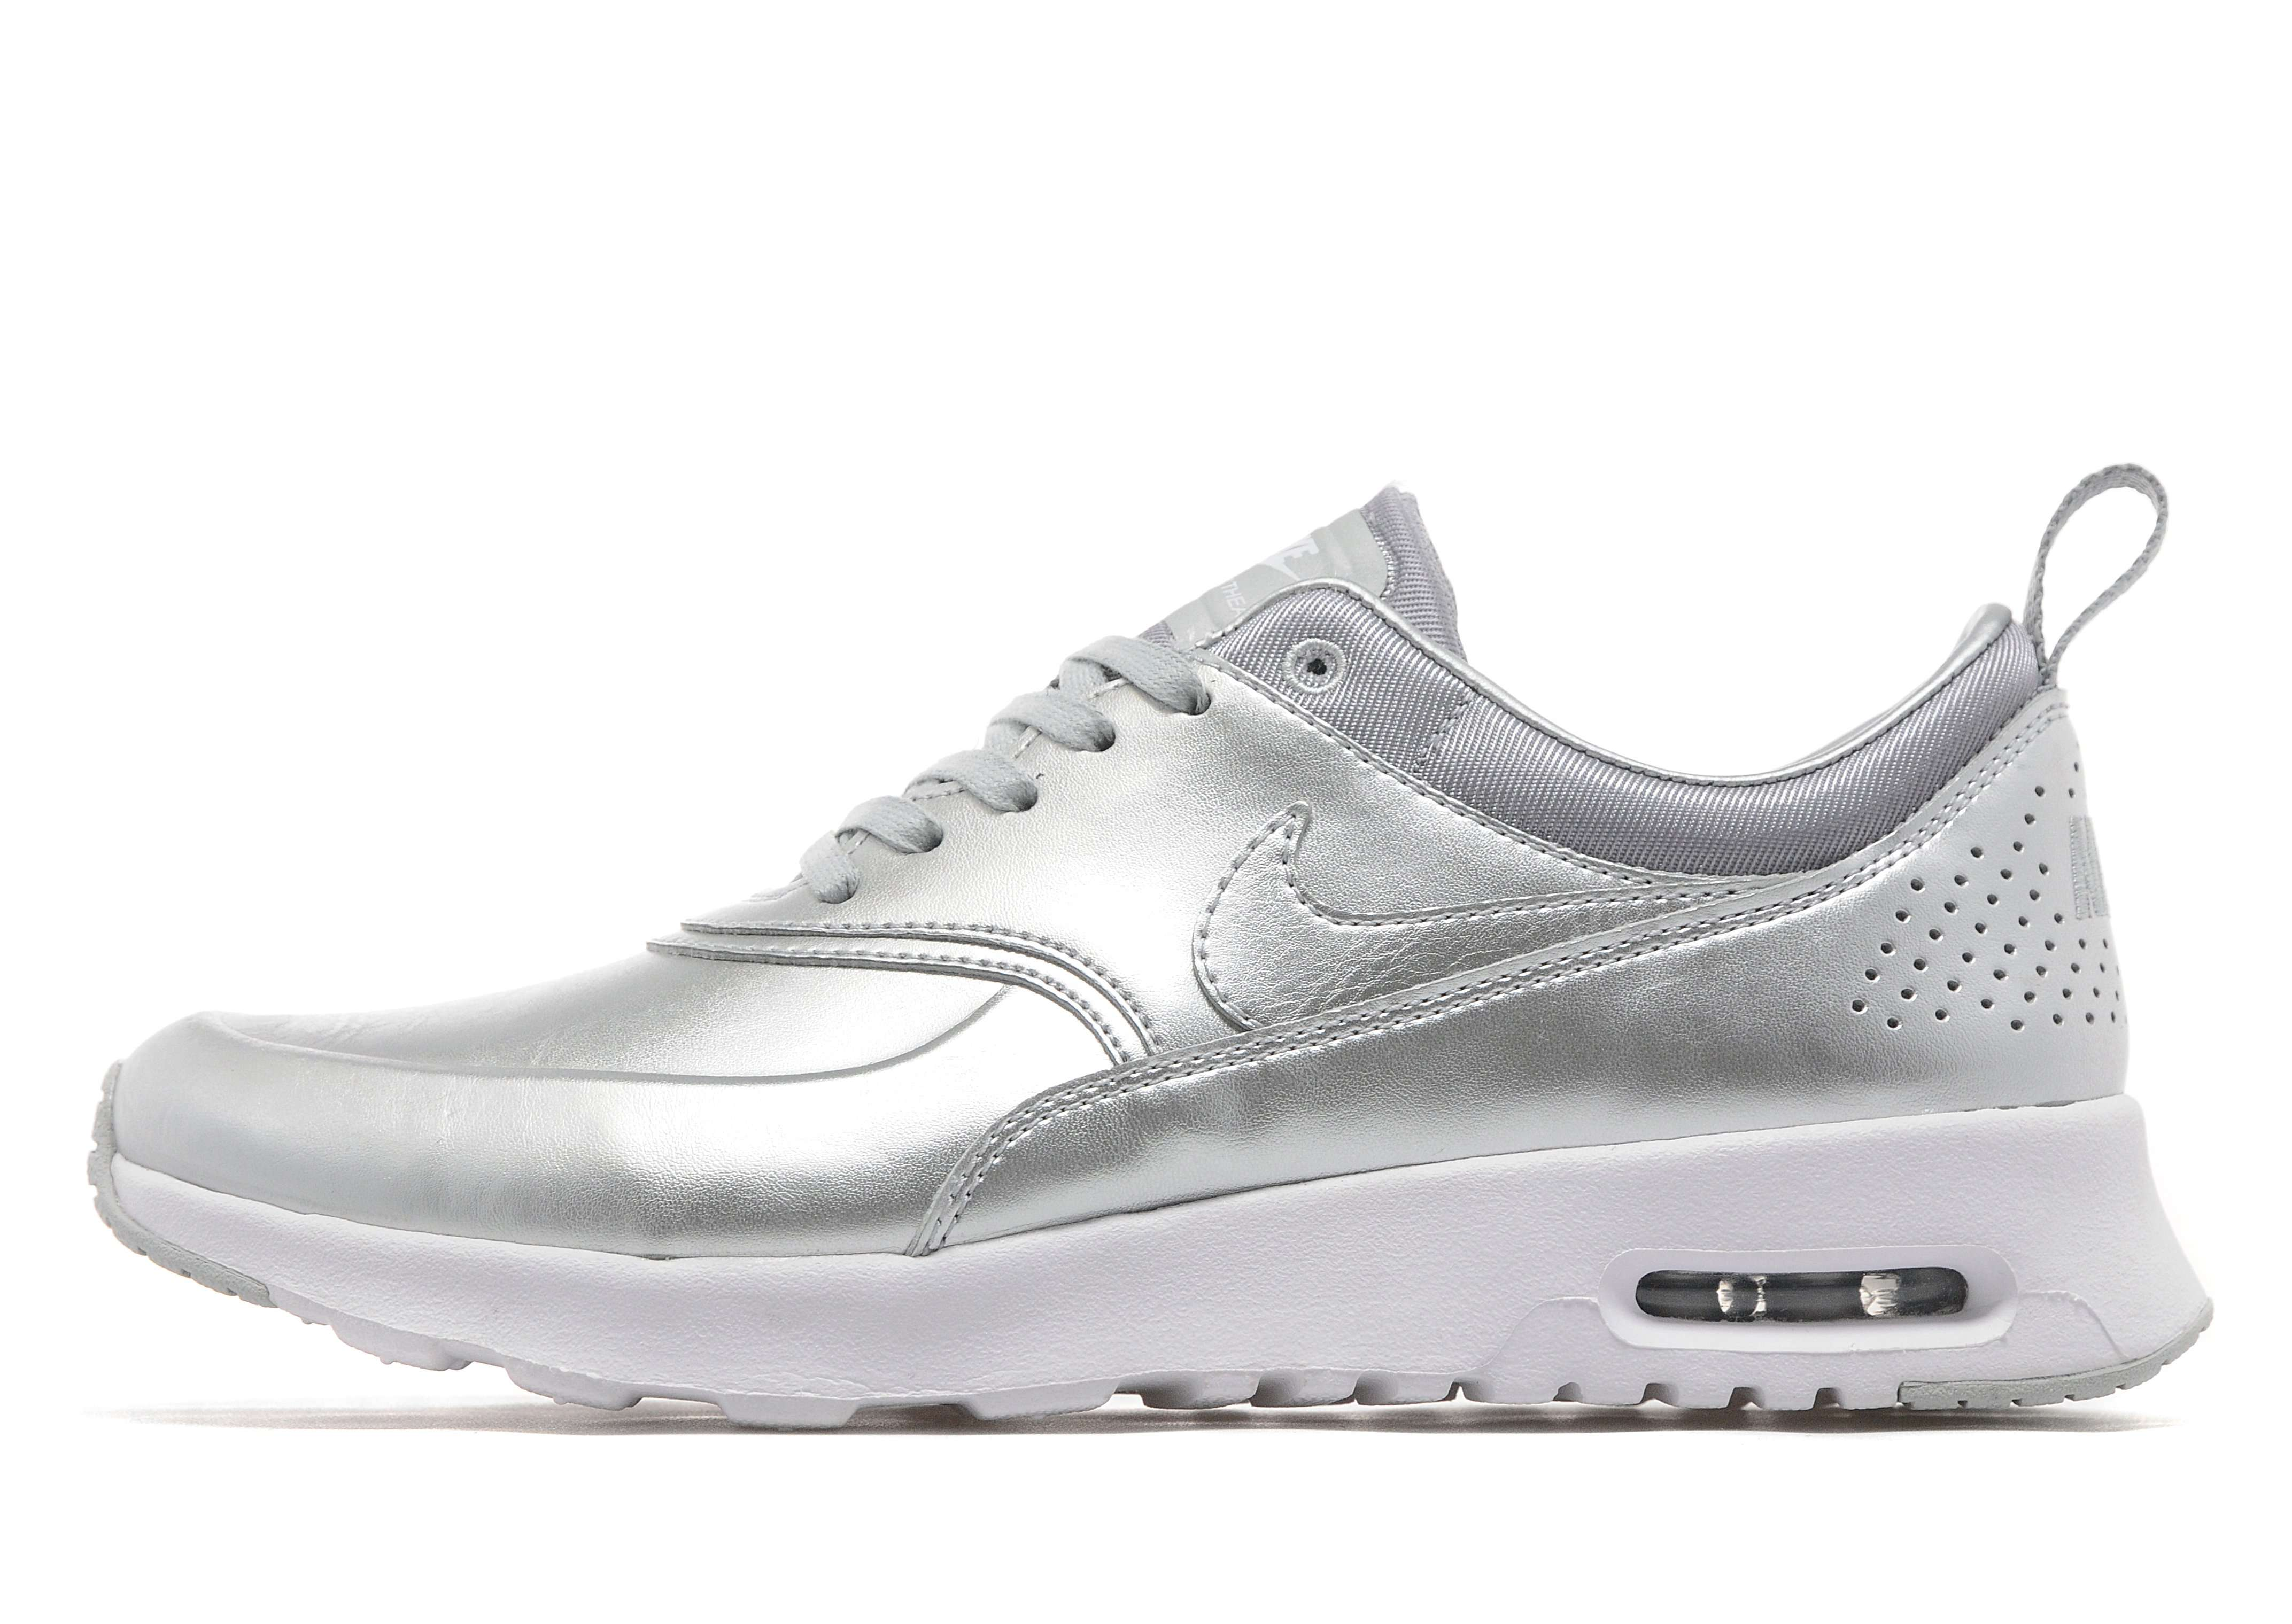 nike air max women's jd sports